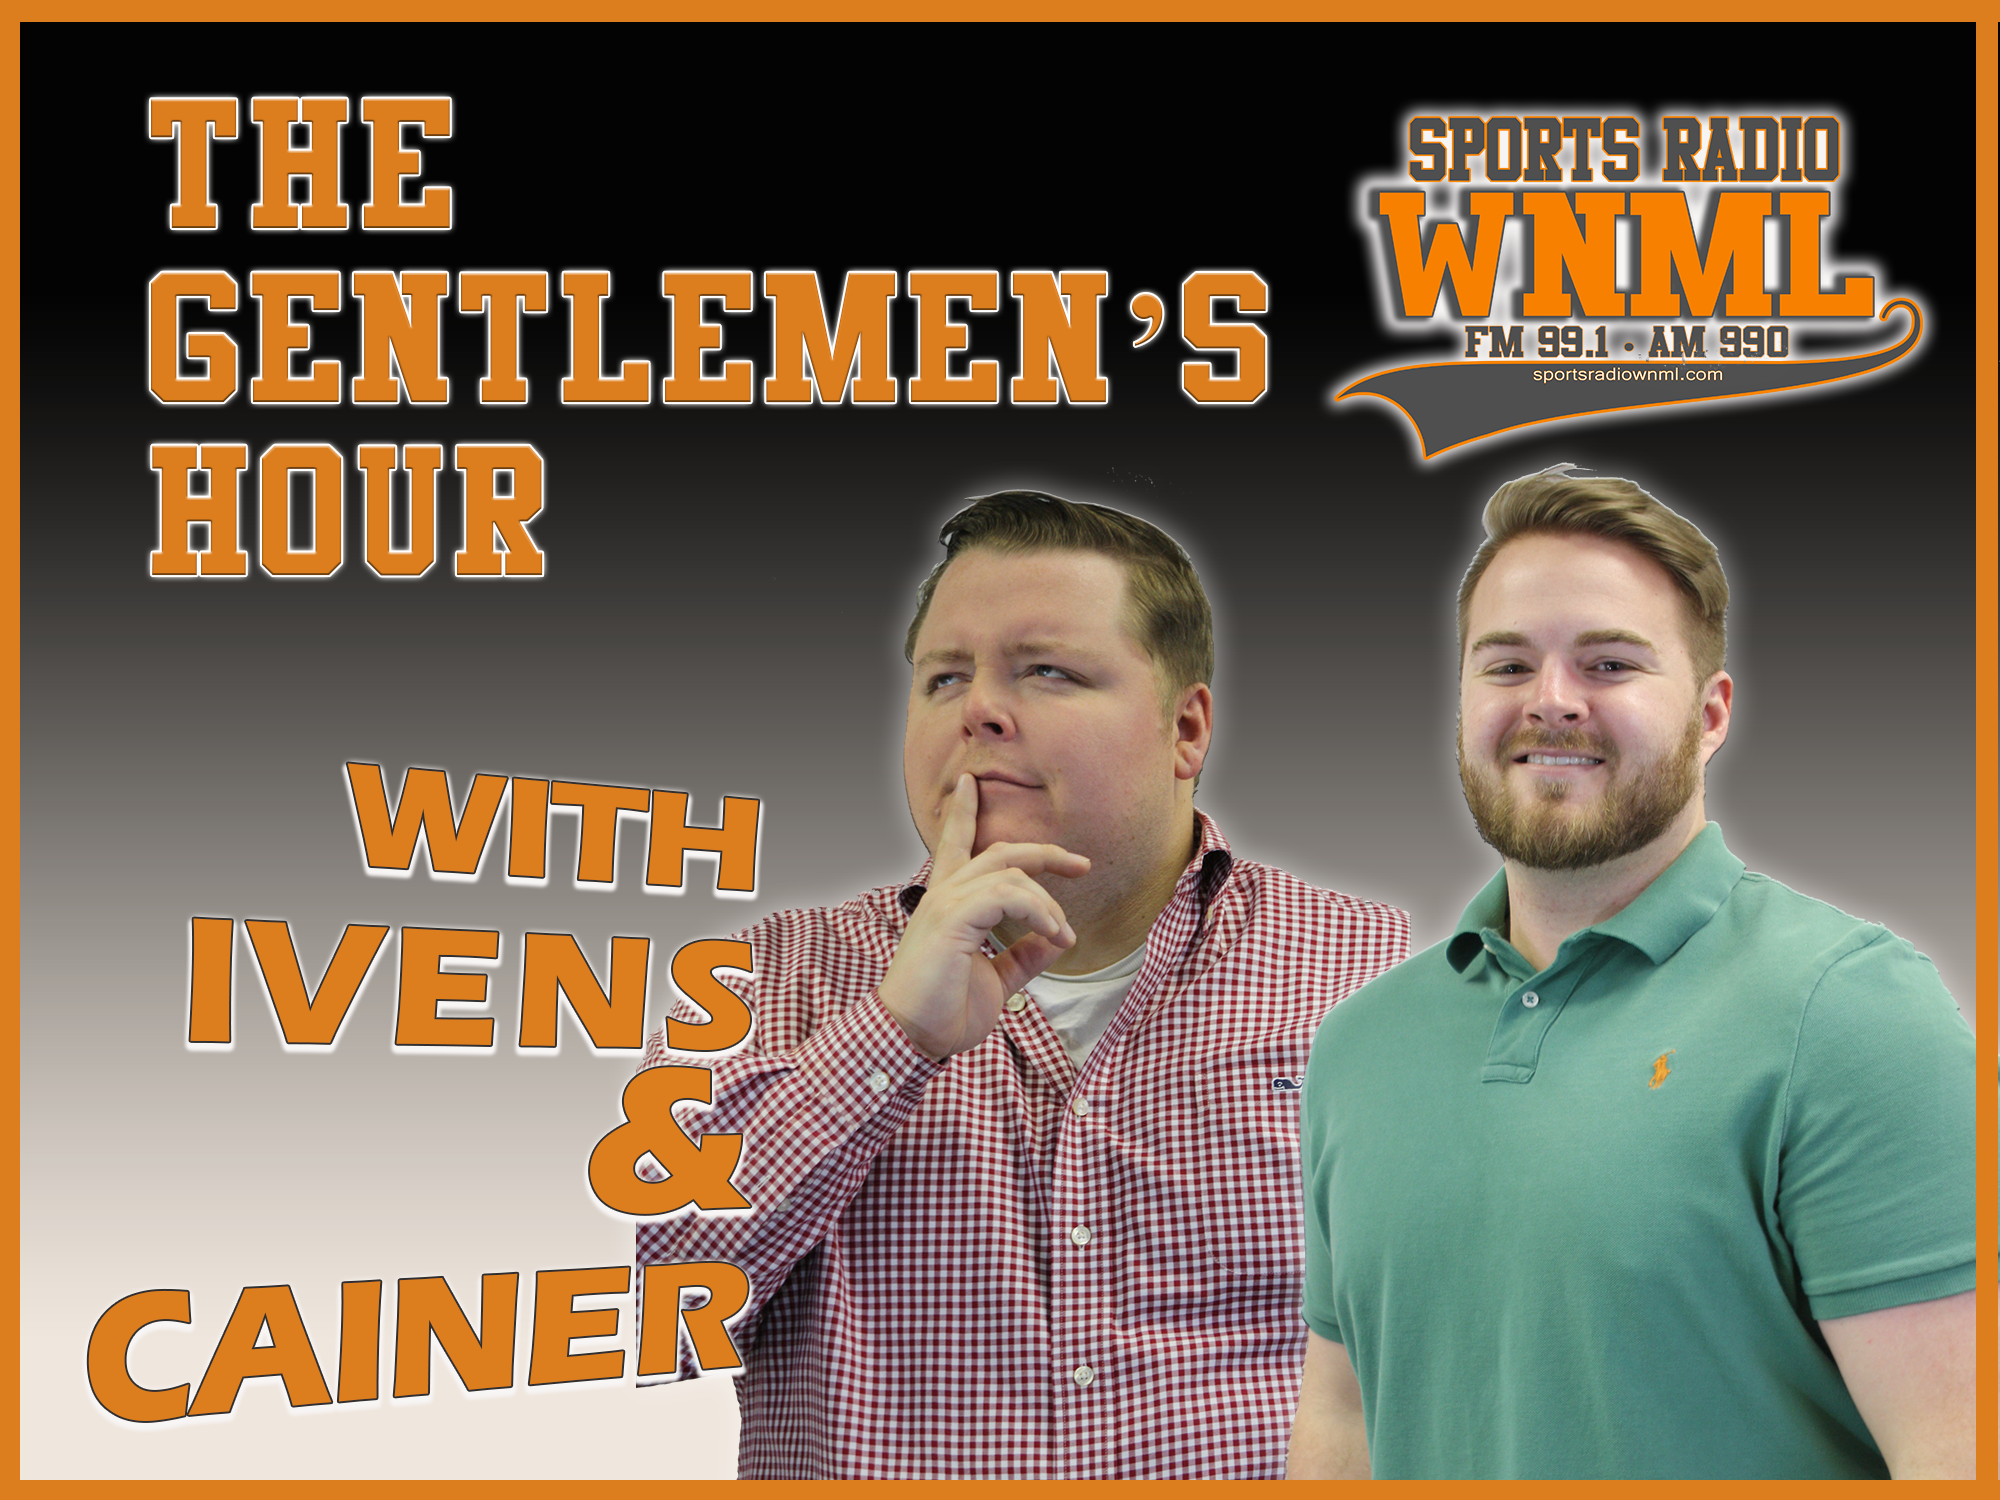 The Gentlemen's Hour Podcast: Episode 26 (4.10.19)